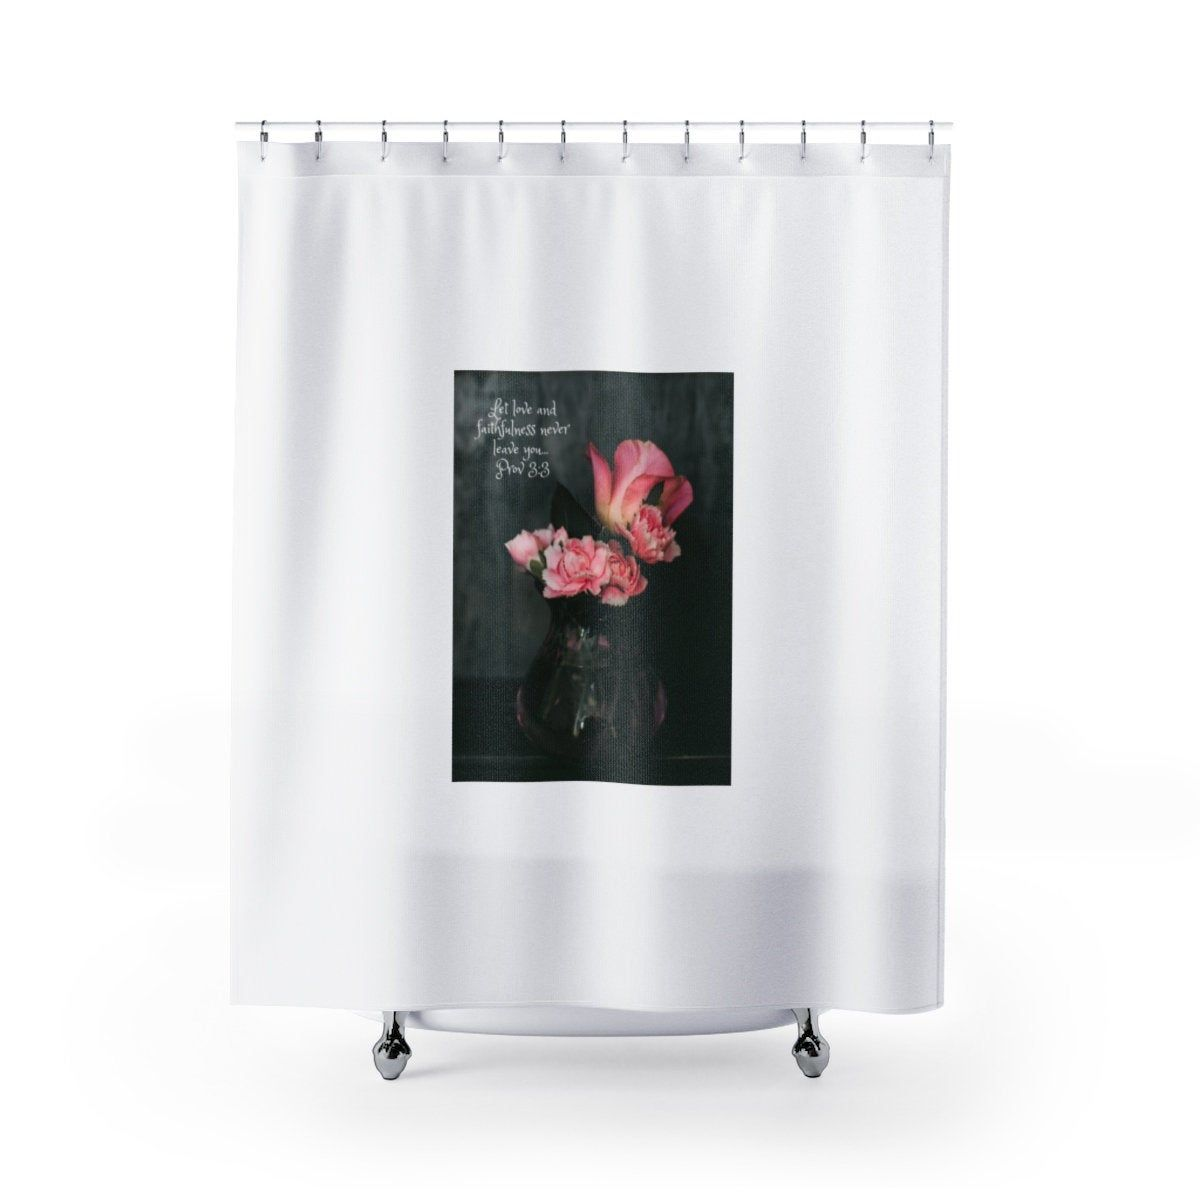 Scripture Shower Curtain Bible Verse Bath Set Christian Shower